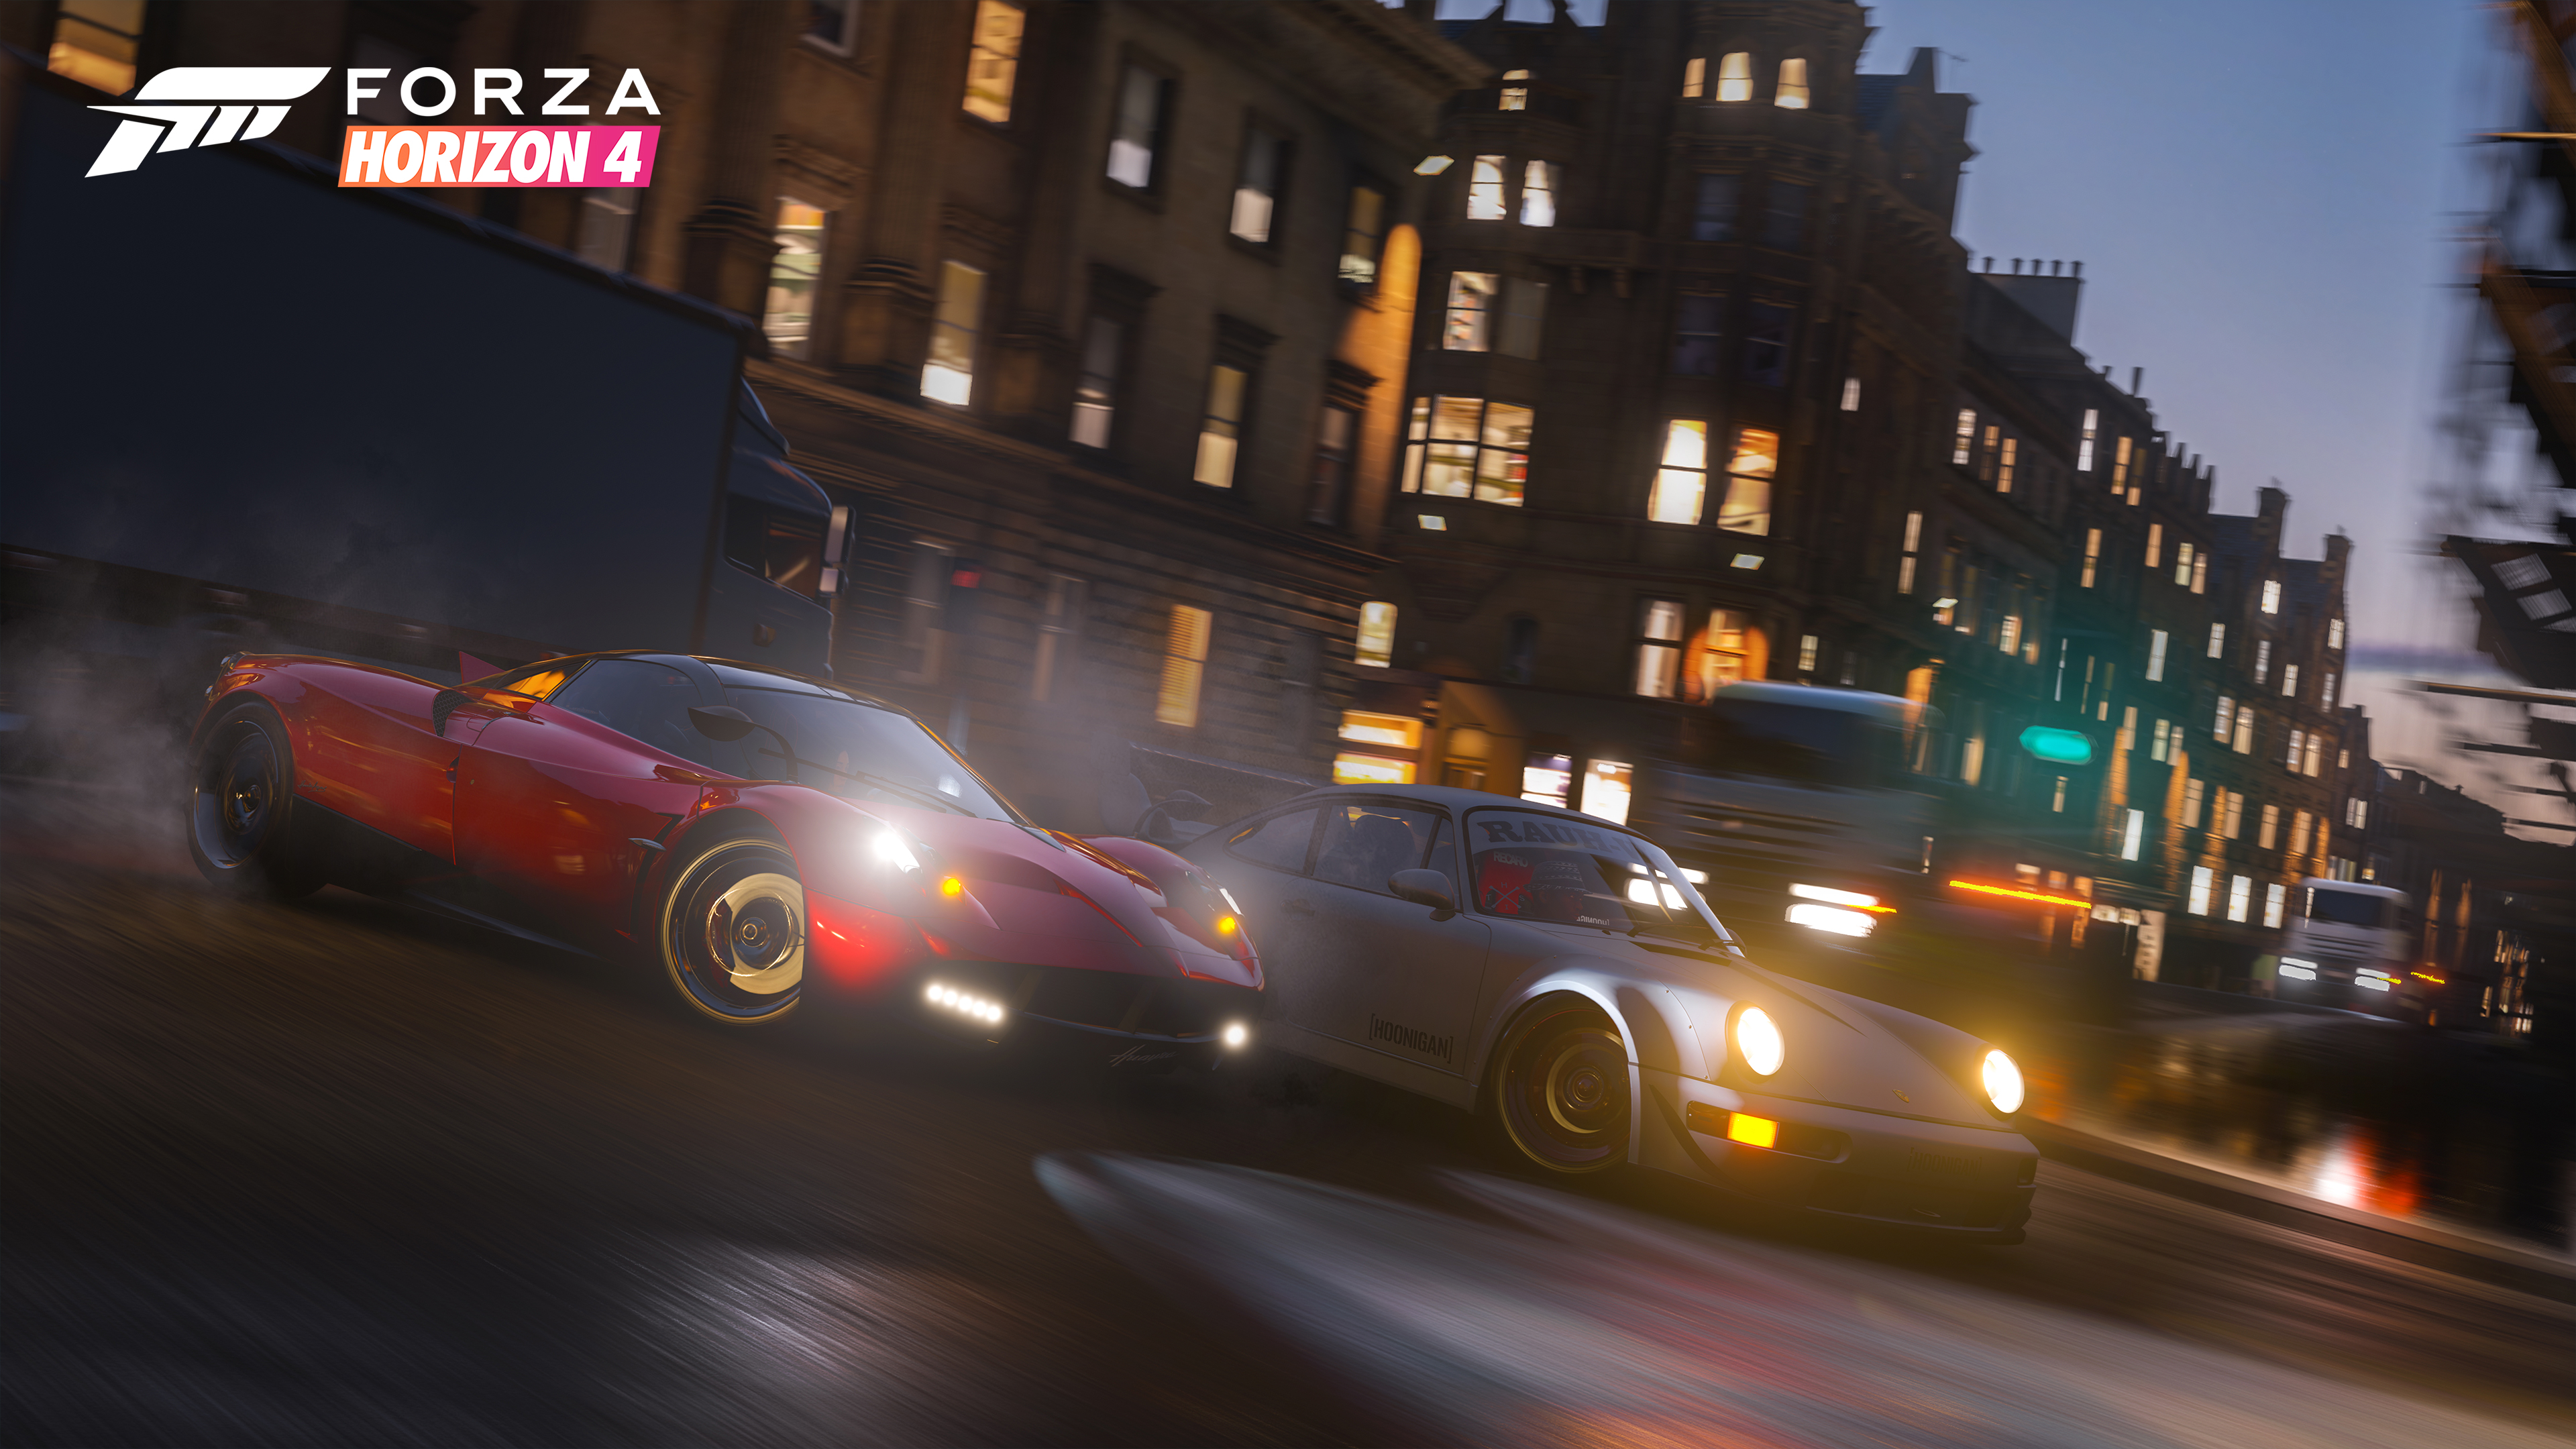 Forza Horizon 3 Car List >> Forza Horizon 4 car list leaks thanks to the Windows Store ...